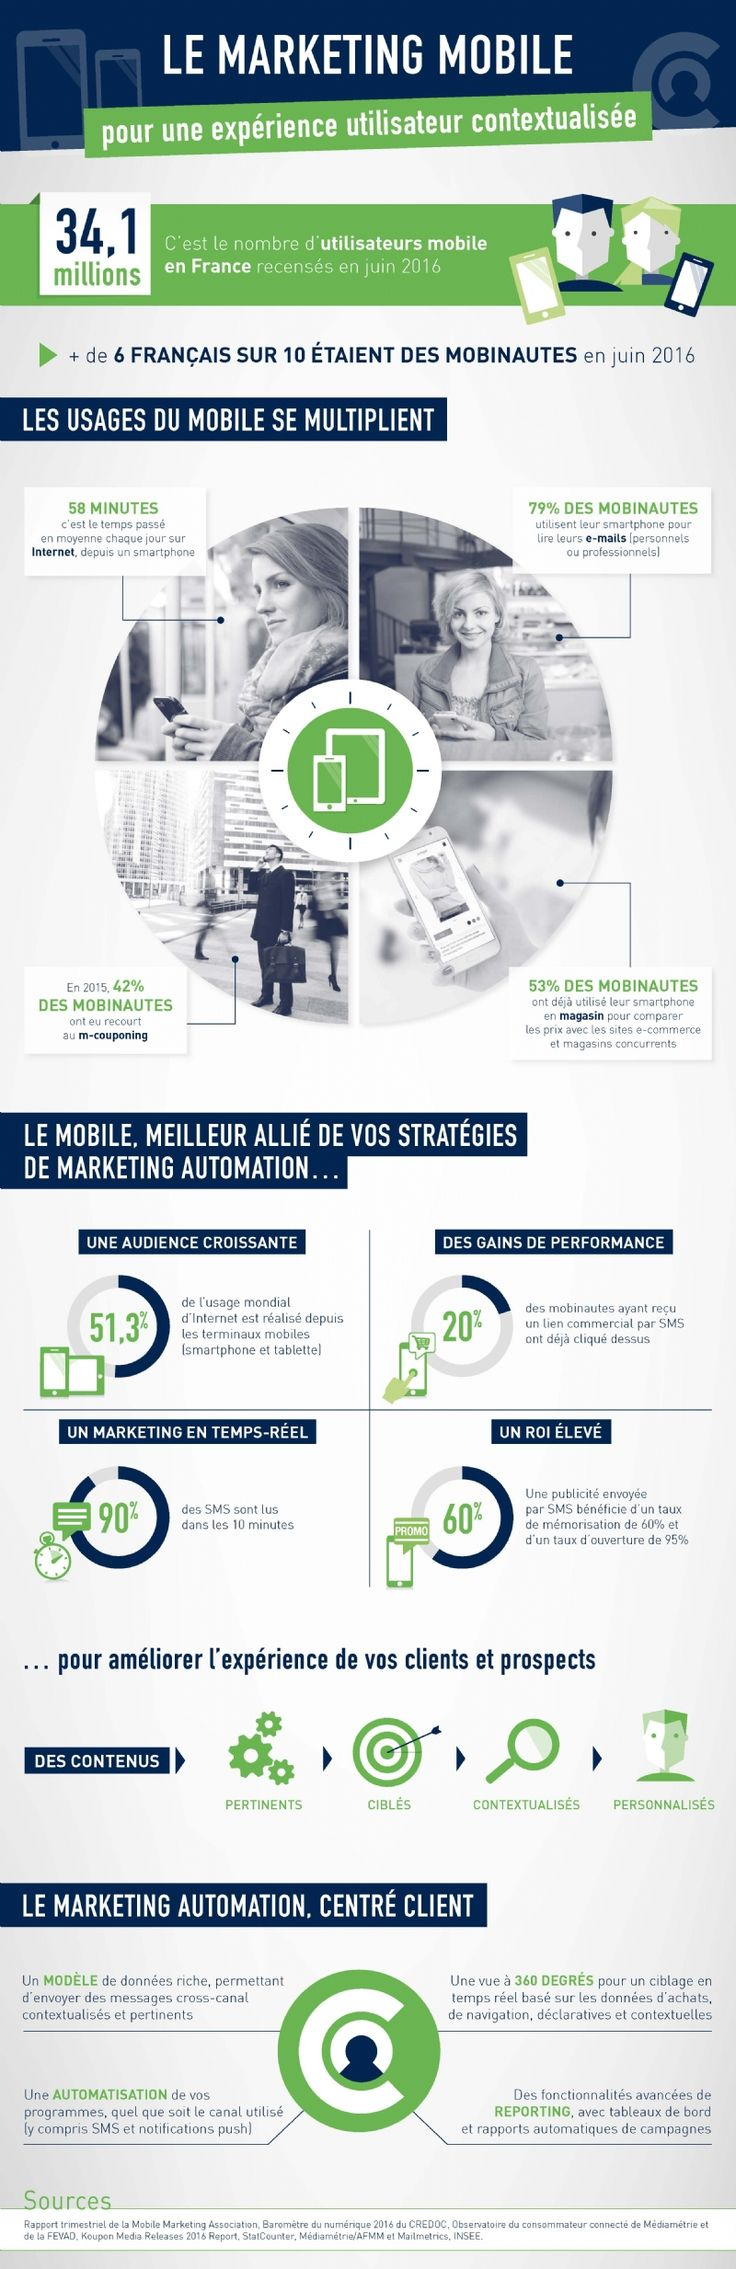 Marketing mobile : un taux d'ouverture de 95% pour le SMS - Mobile marketing